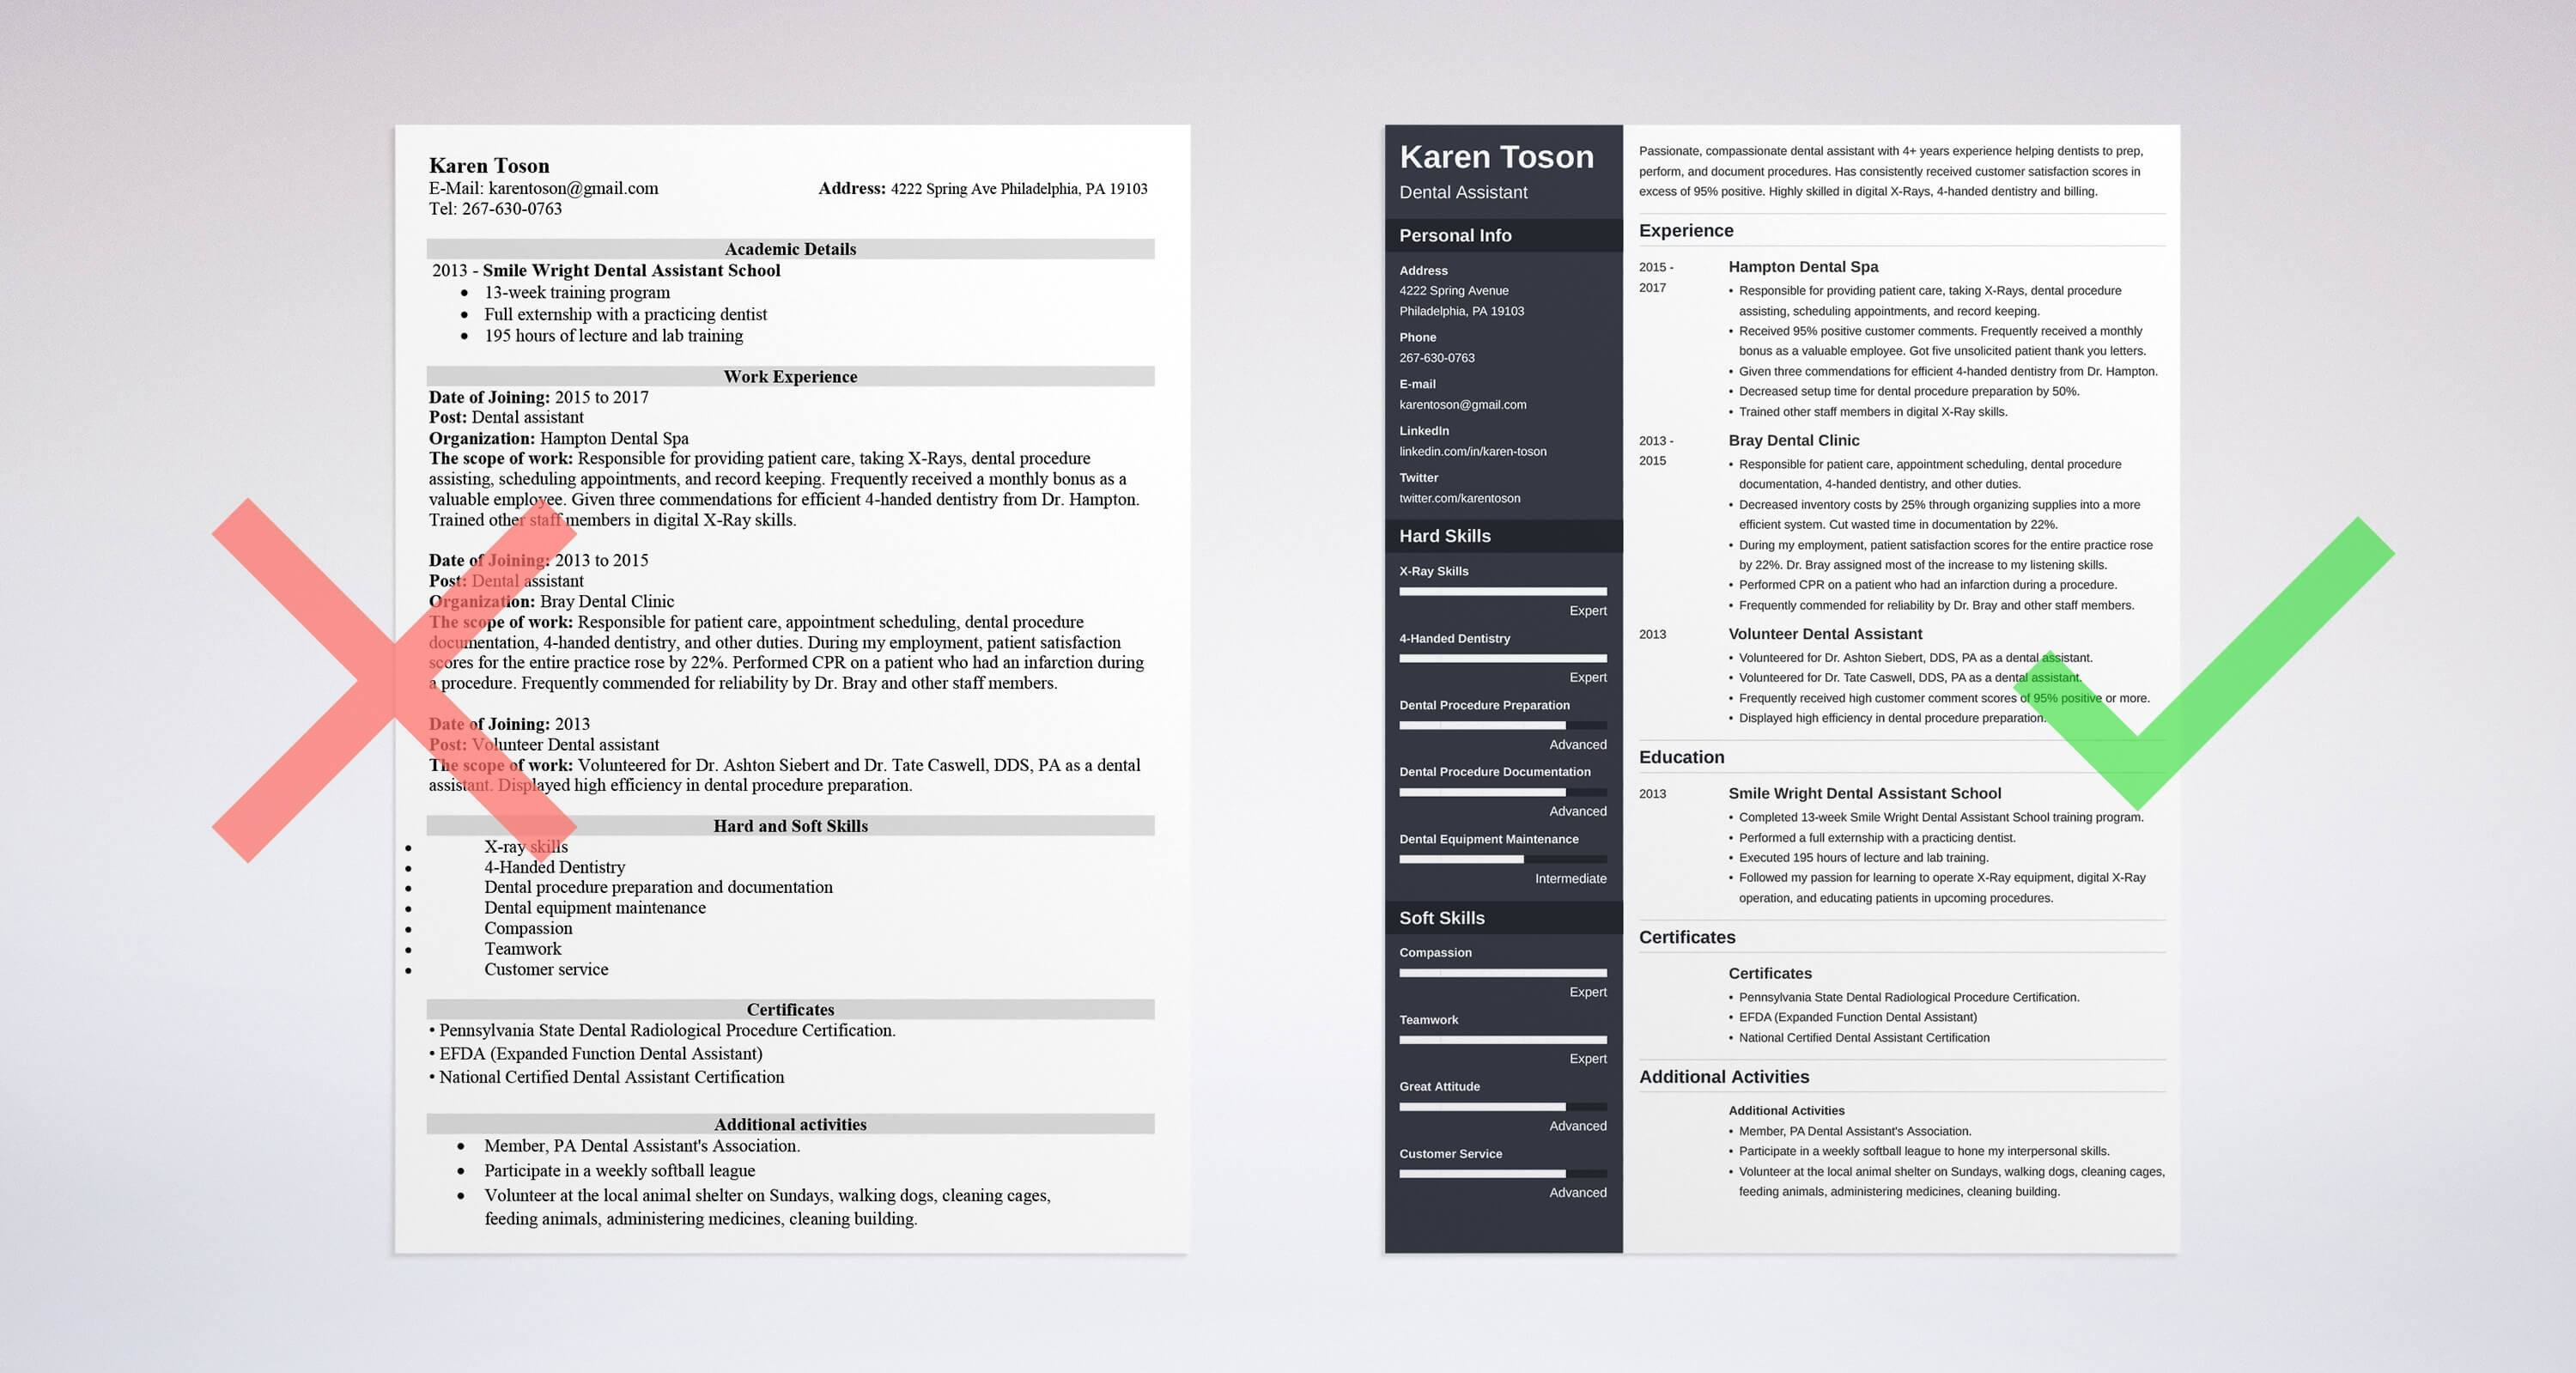 Dental Assistant Resume: Sample & Complete Guide [20+ Examples]